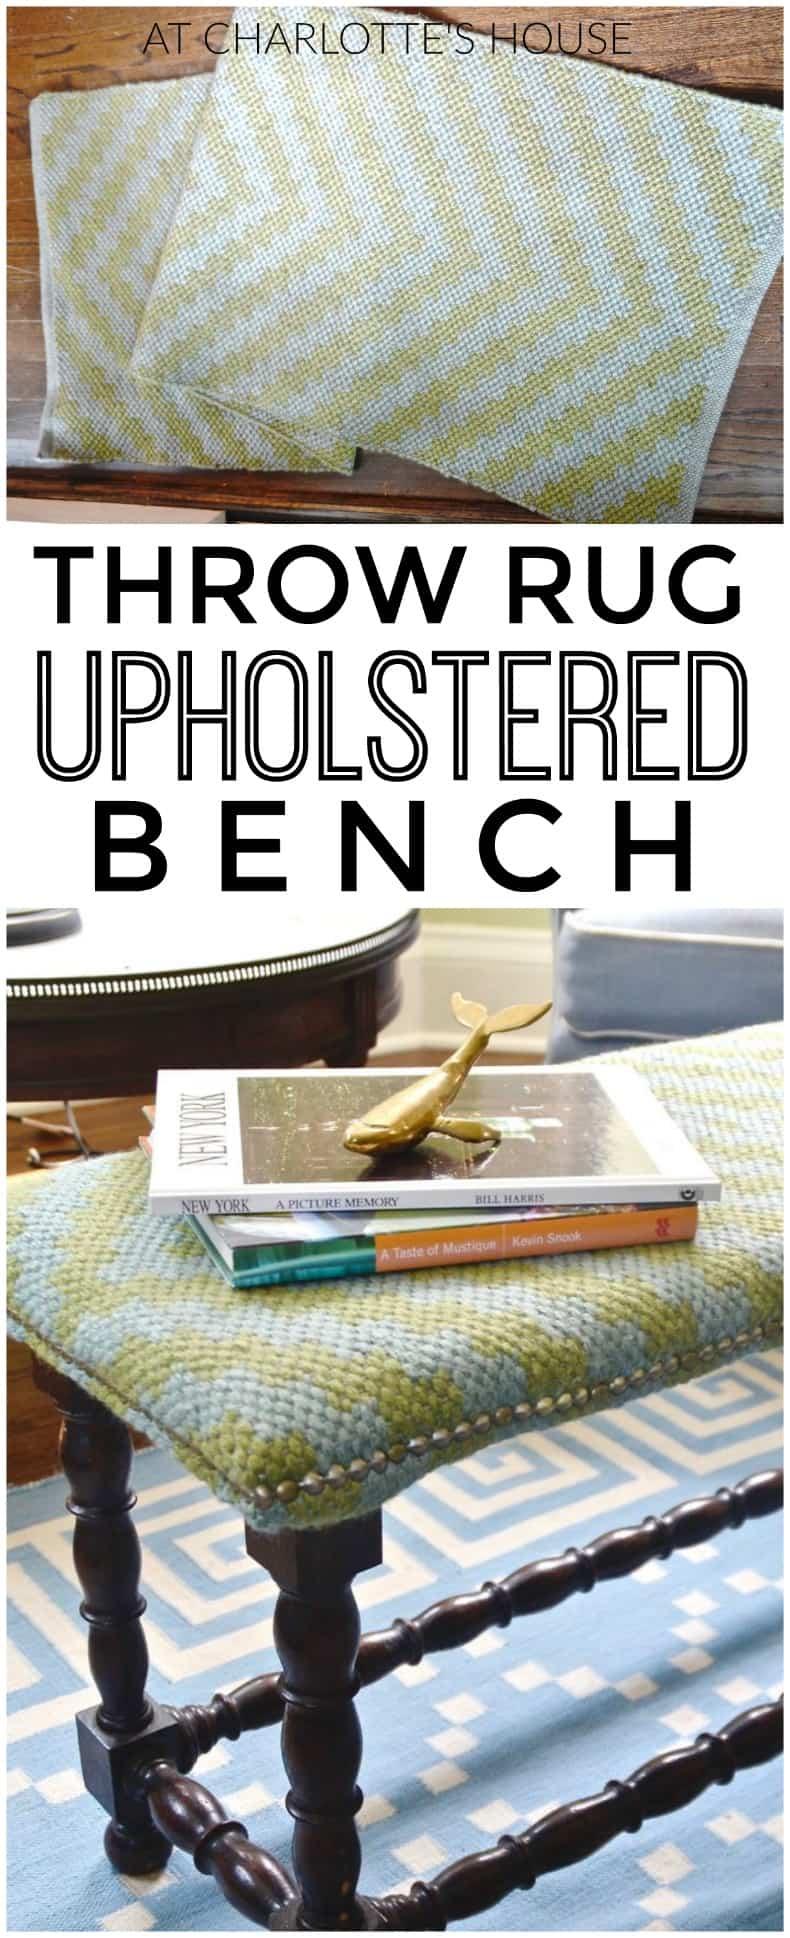 Use an old throw rug to turn a basic bench into an upholstered beauty.